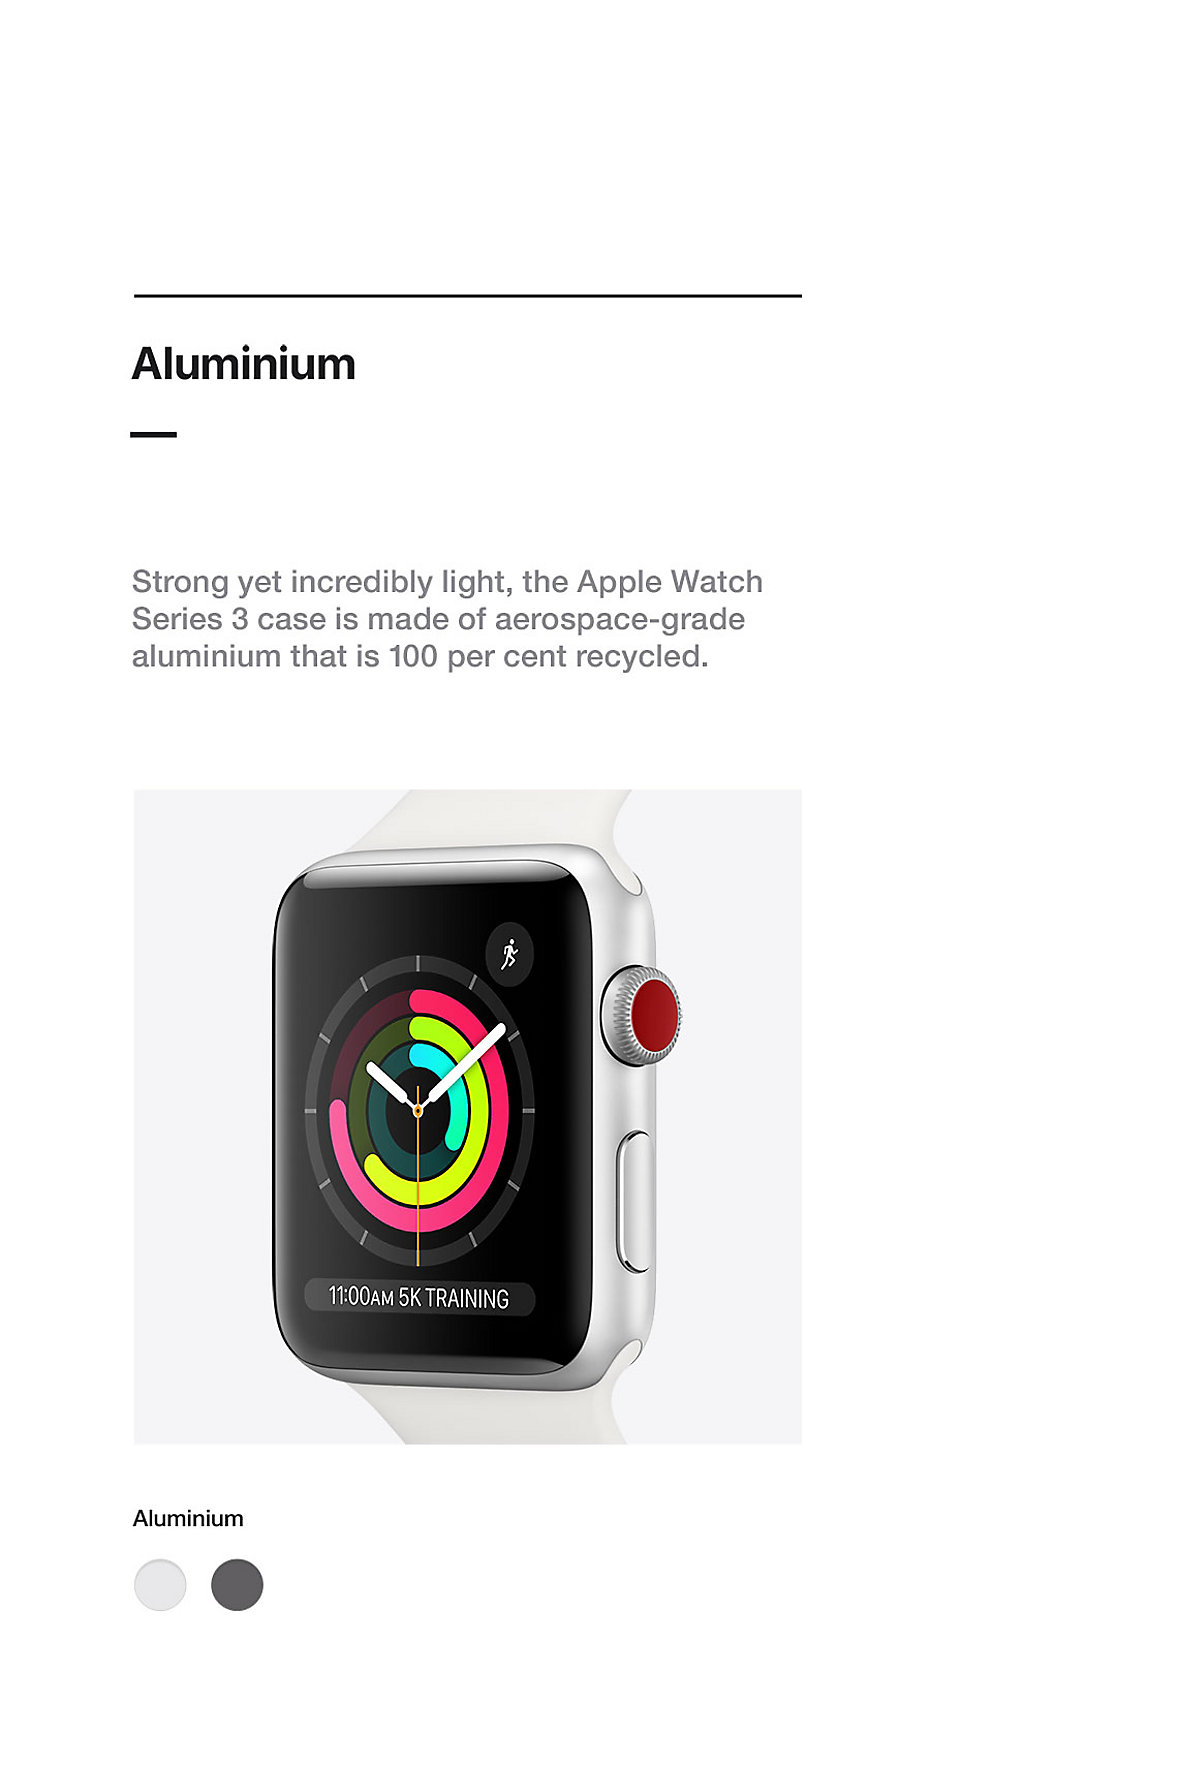 Apple Watch Materials and Finishes Series 3